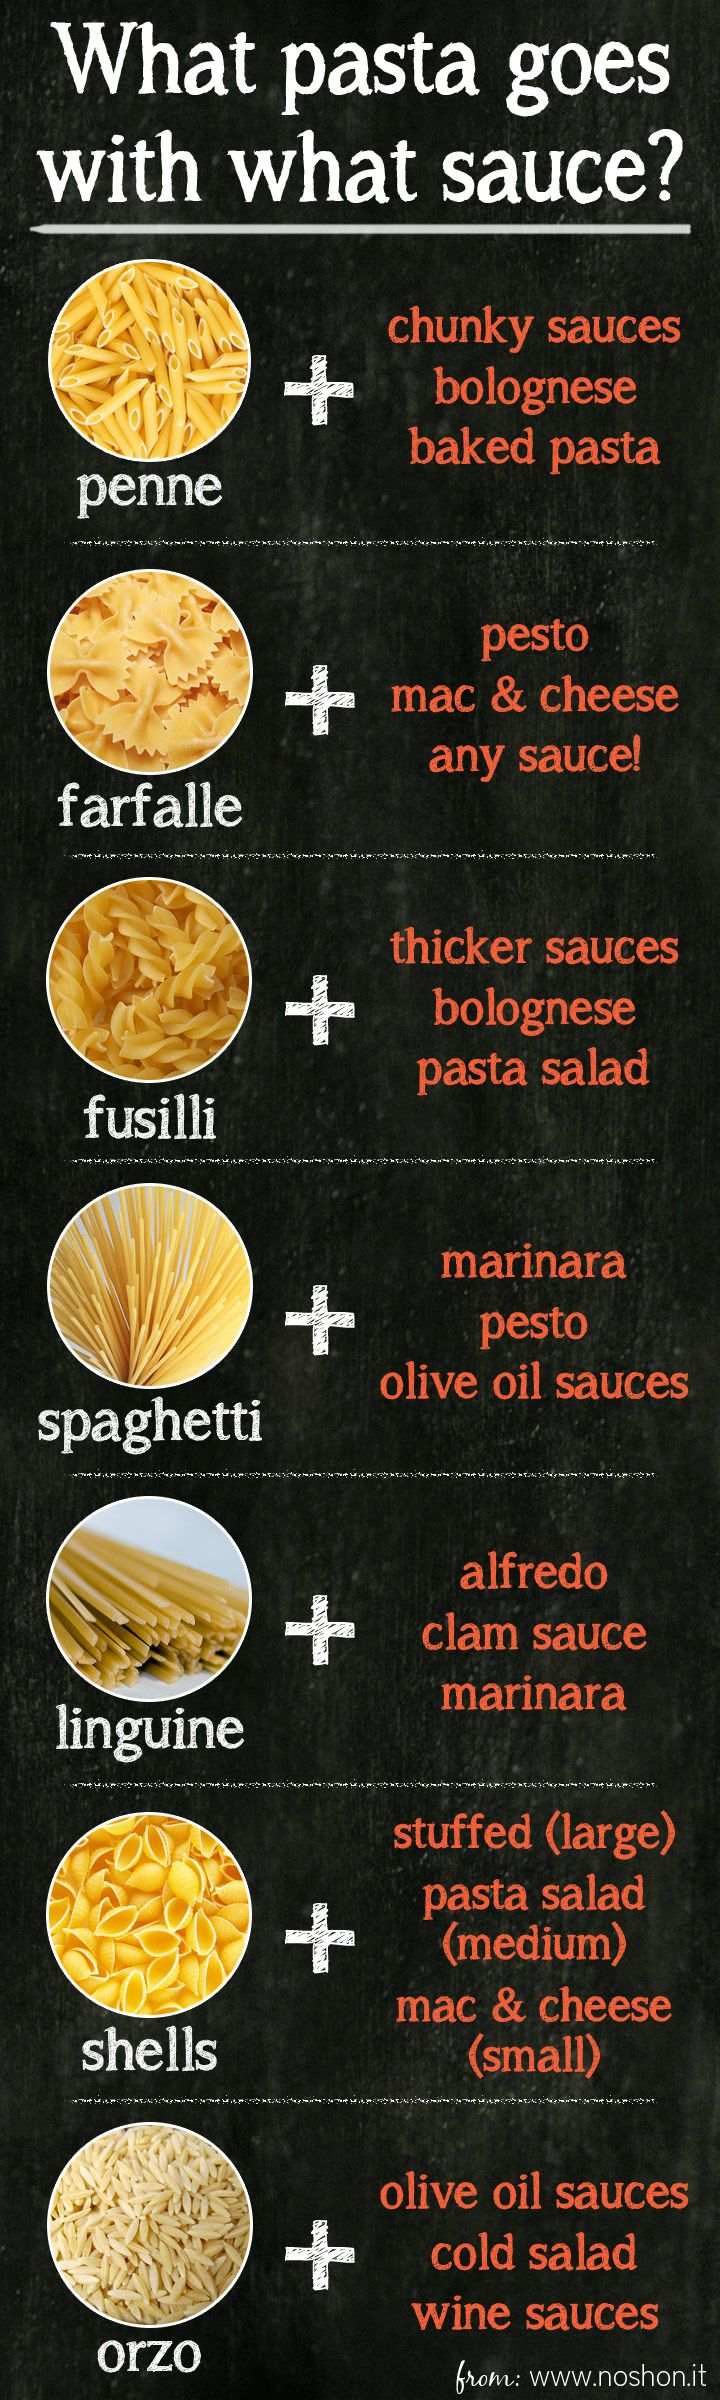 What pasta goes with what sauces?